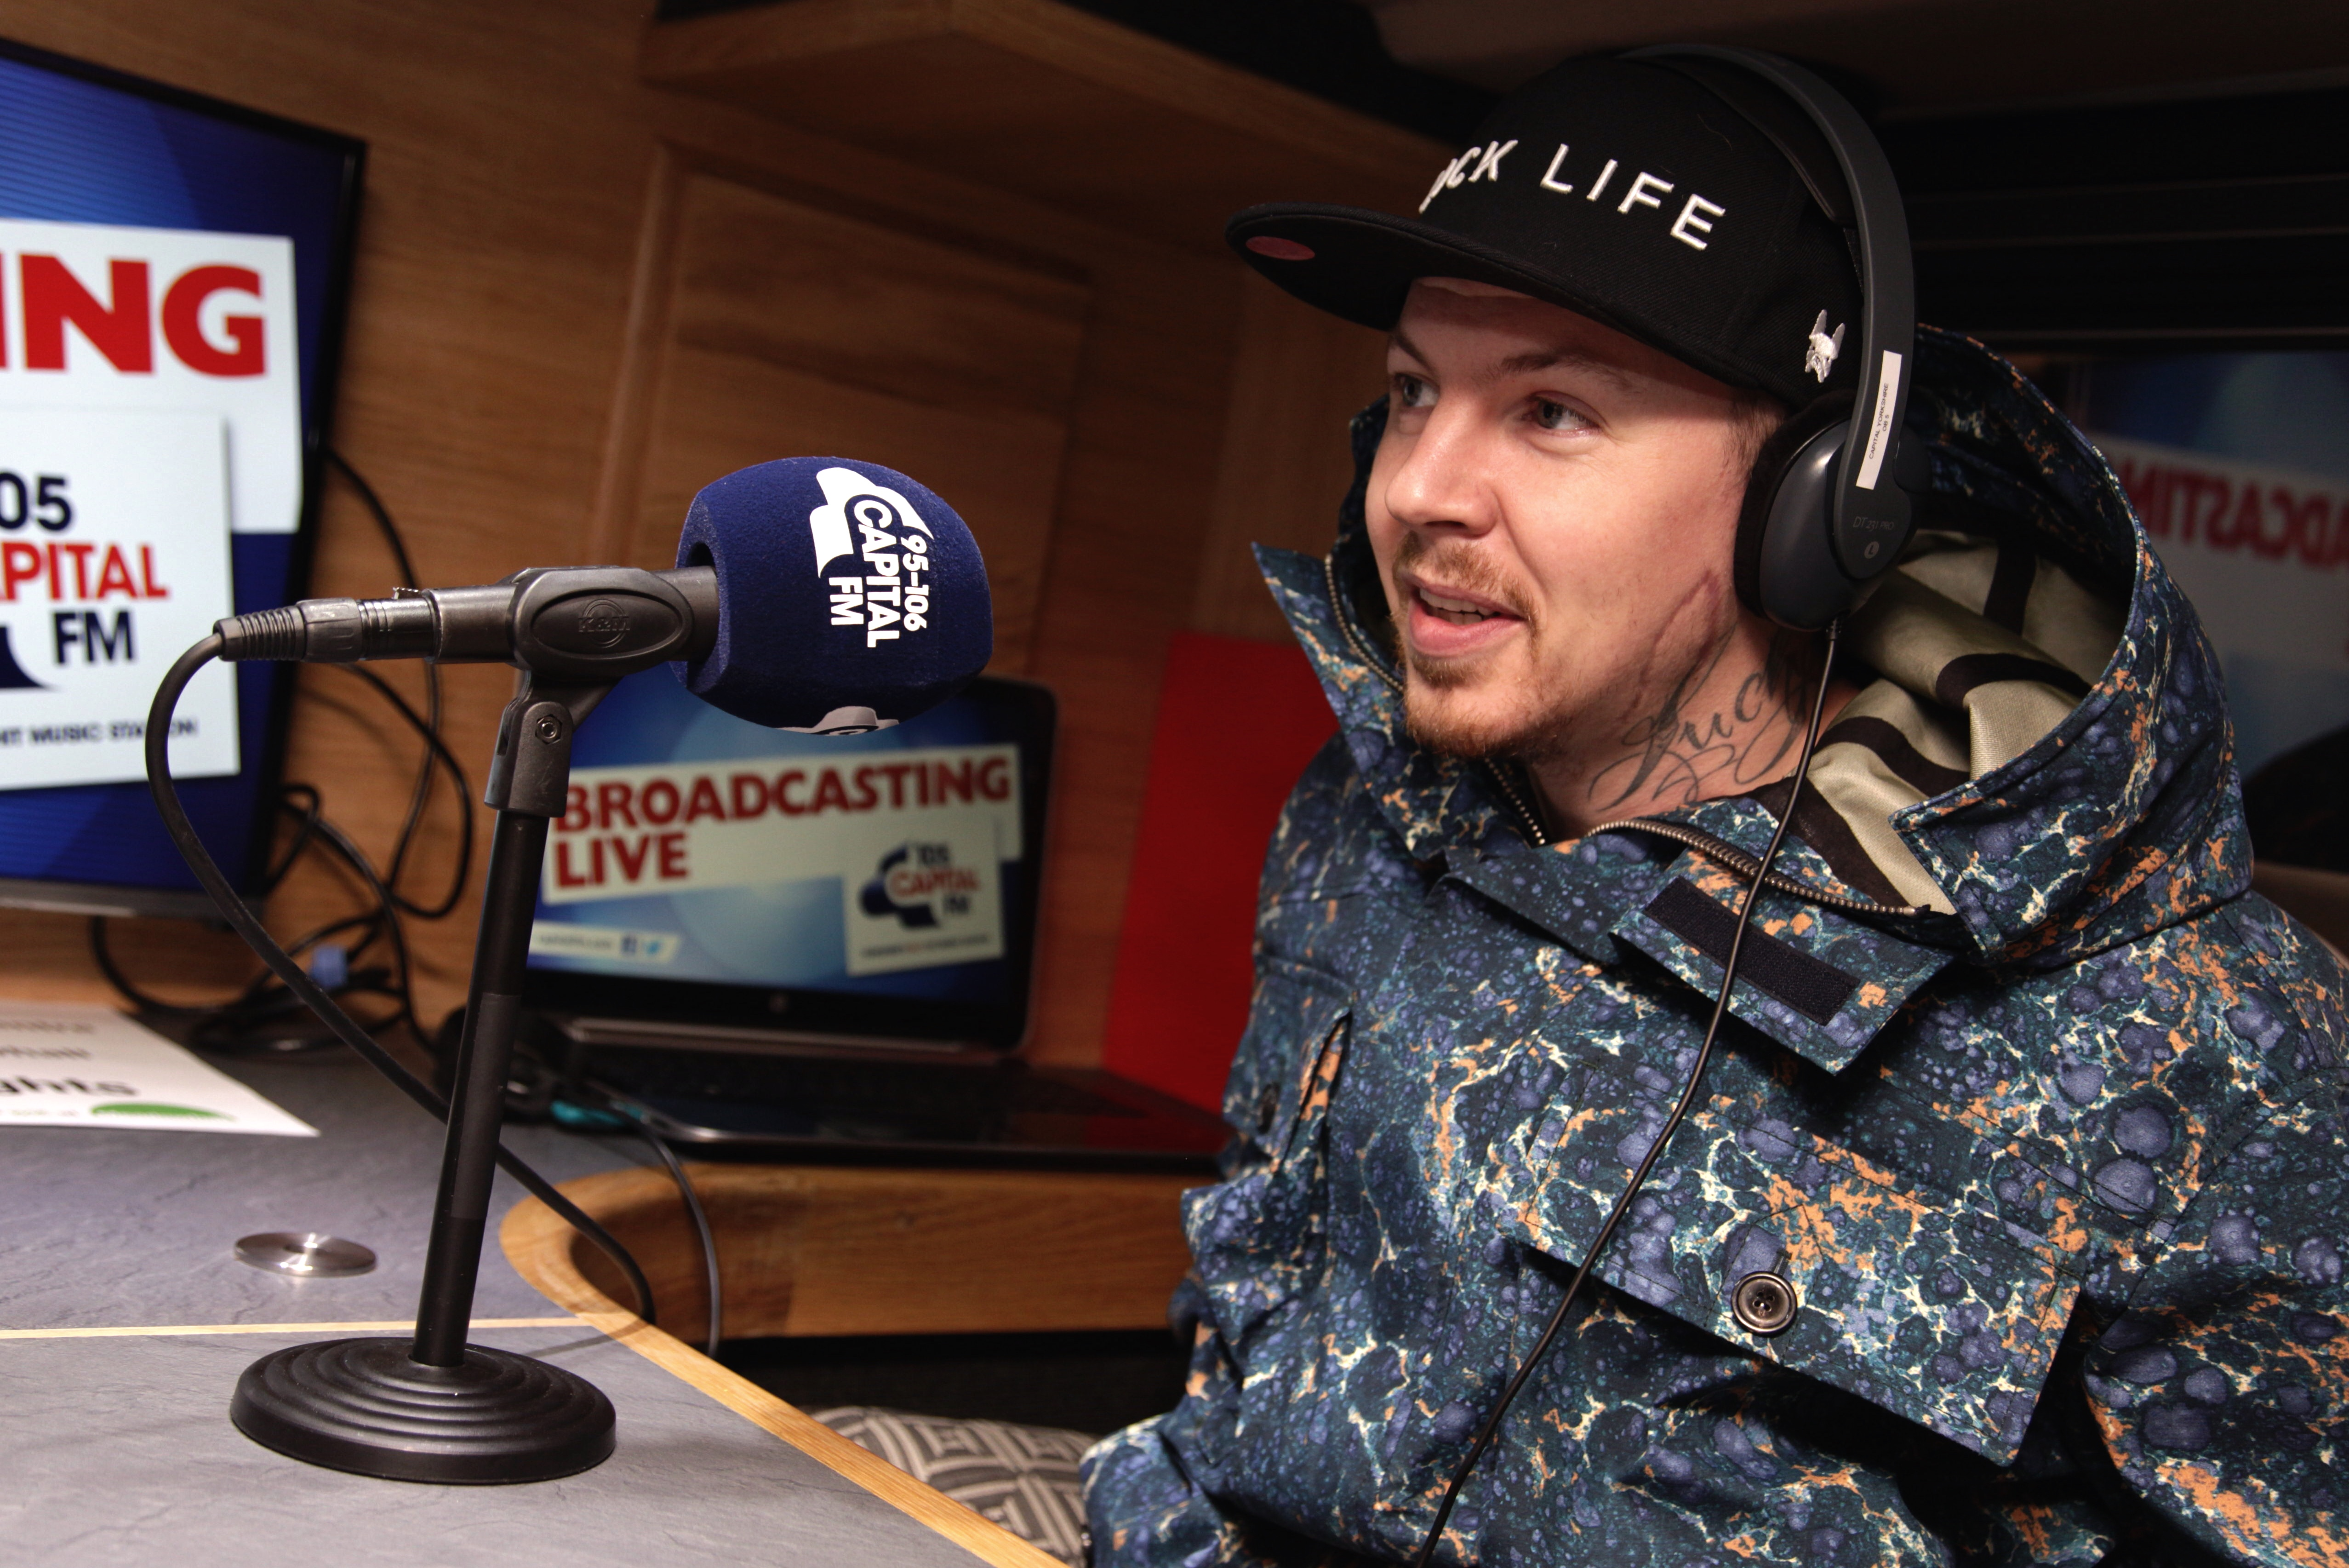 Professor Green interview backstage